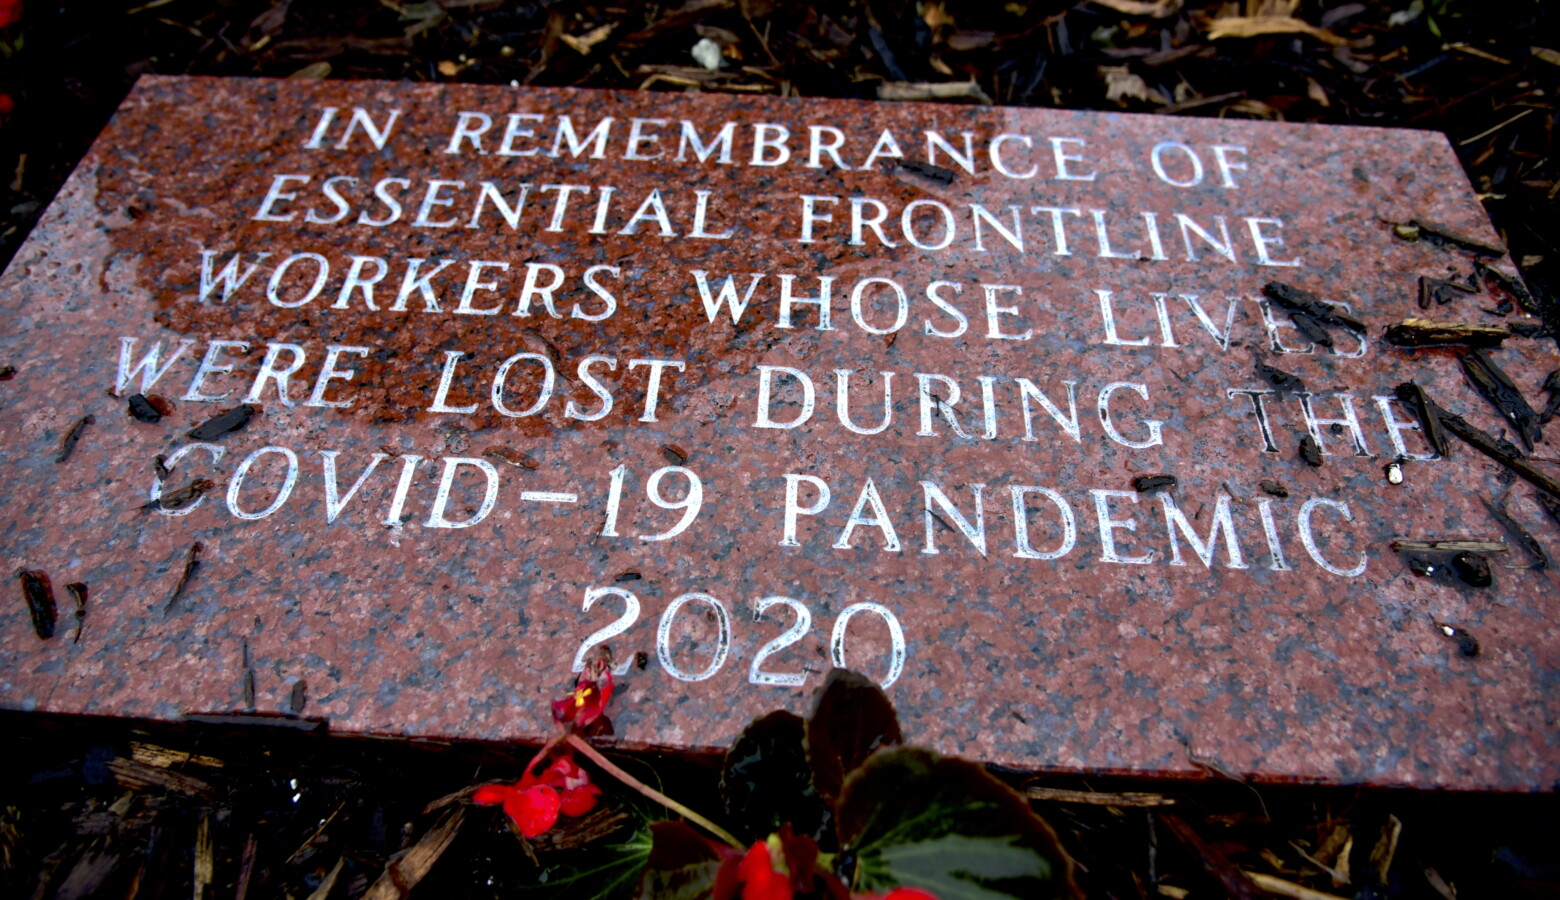 A memorial to essential workers who died in the pandemic was dedicated at Howard Park in South Bend. (Justin Hicks/IPB News)